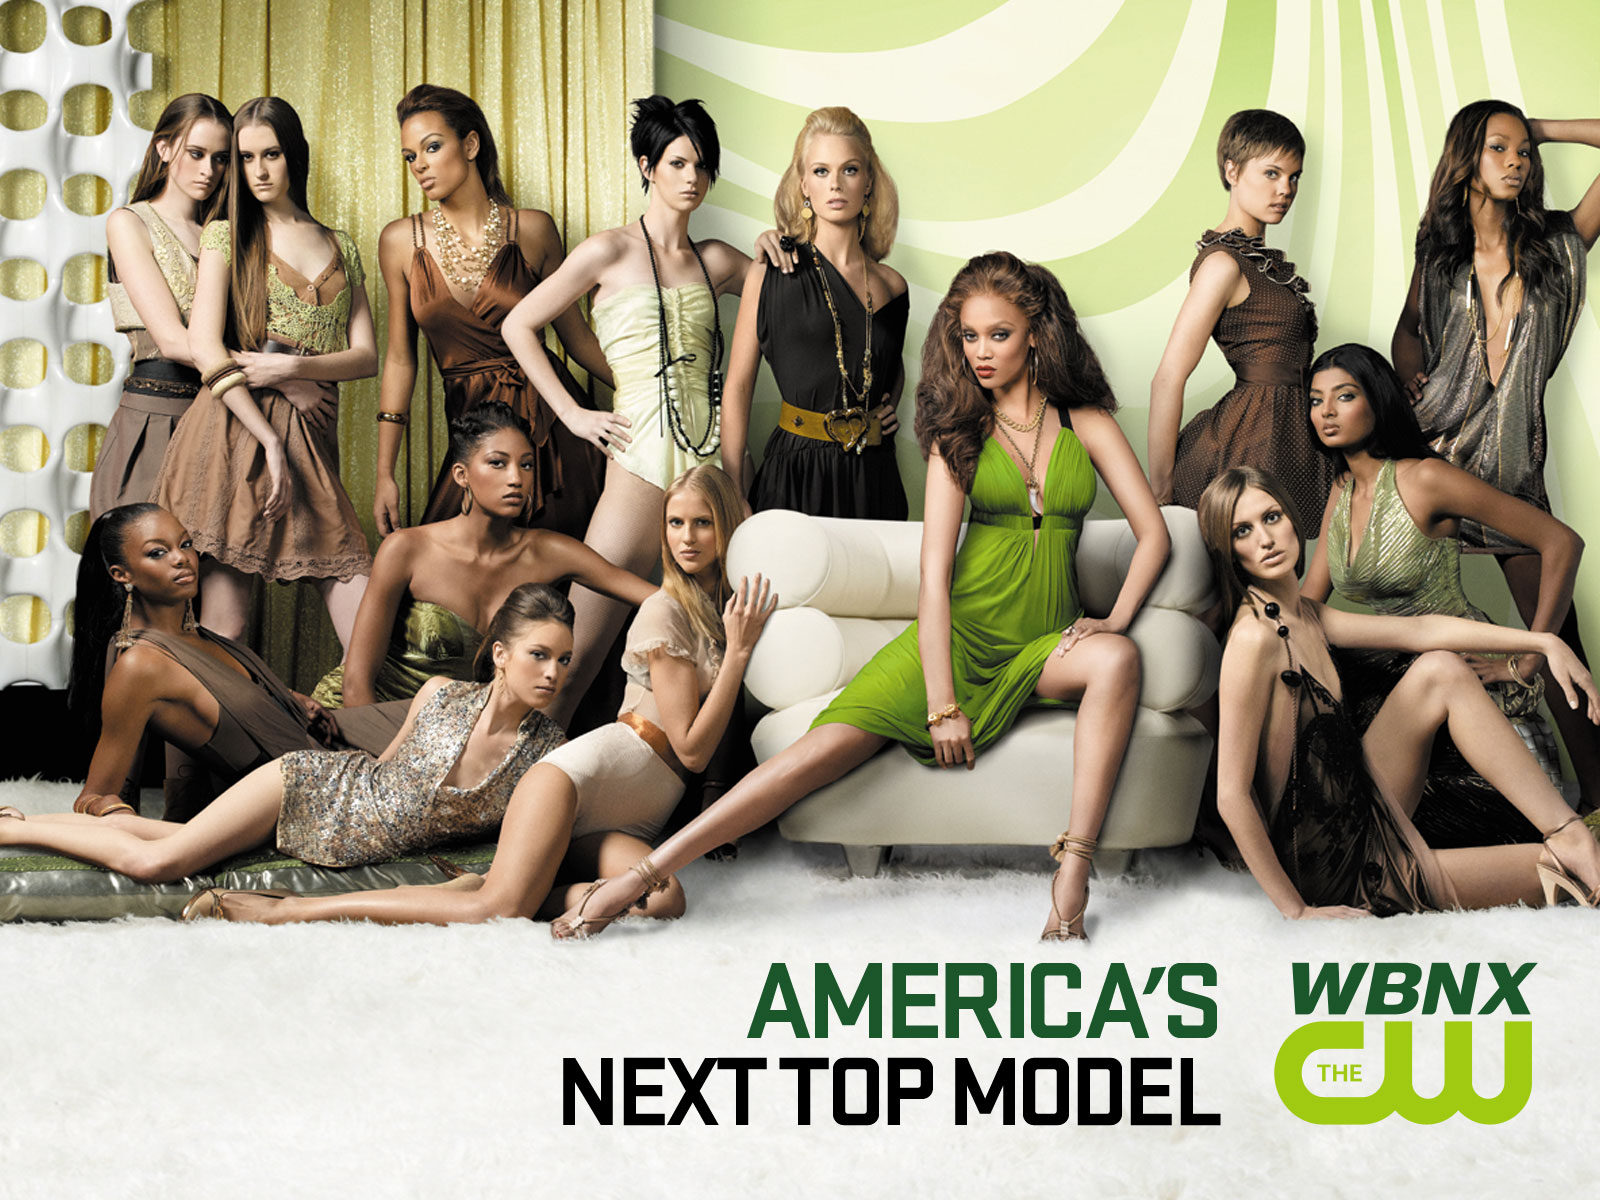 America's Next Top Model: Season 7